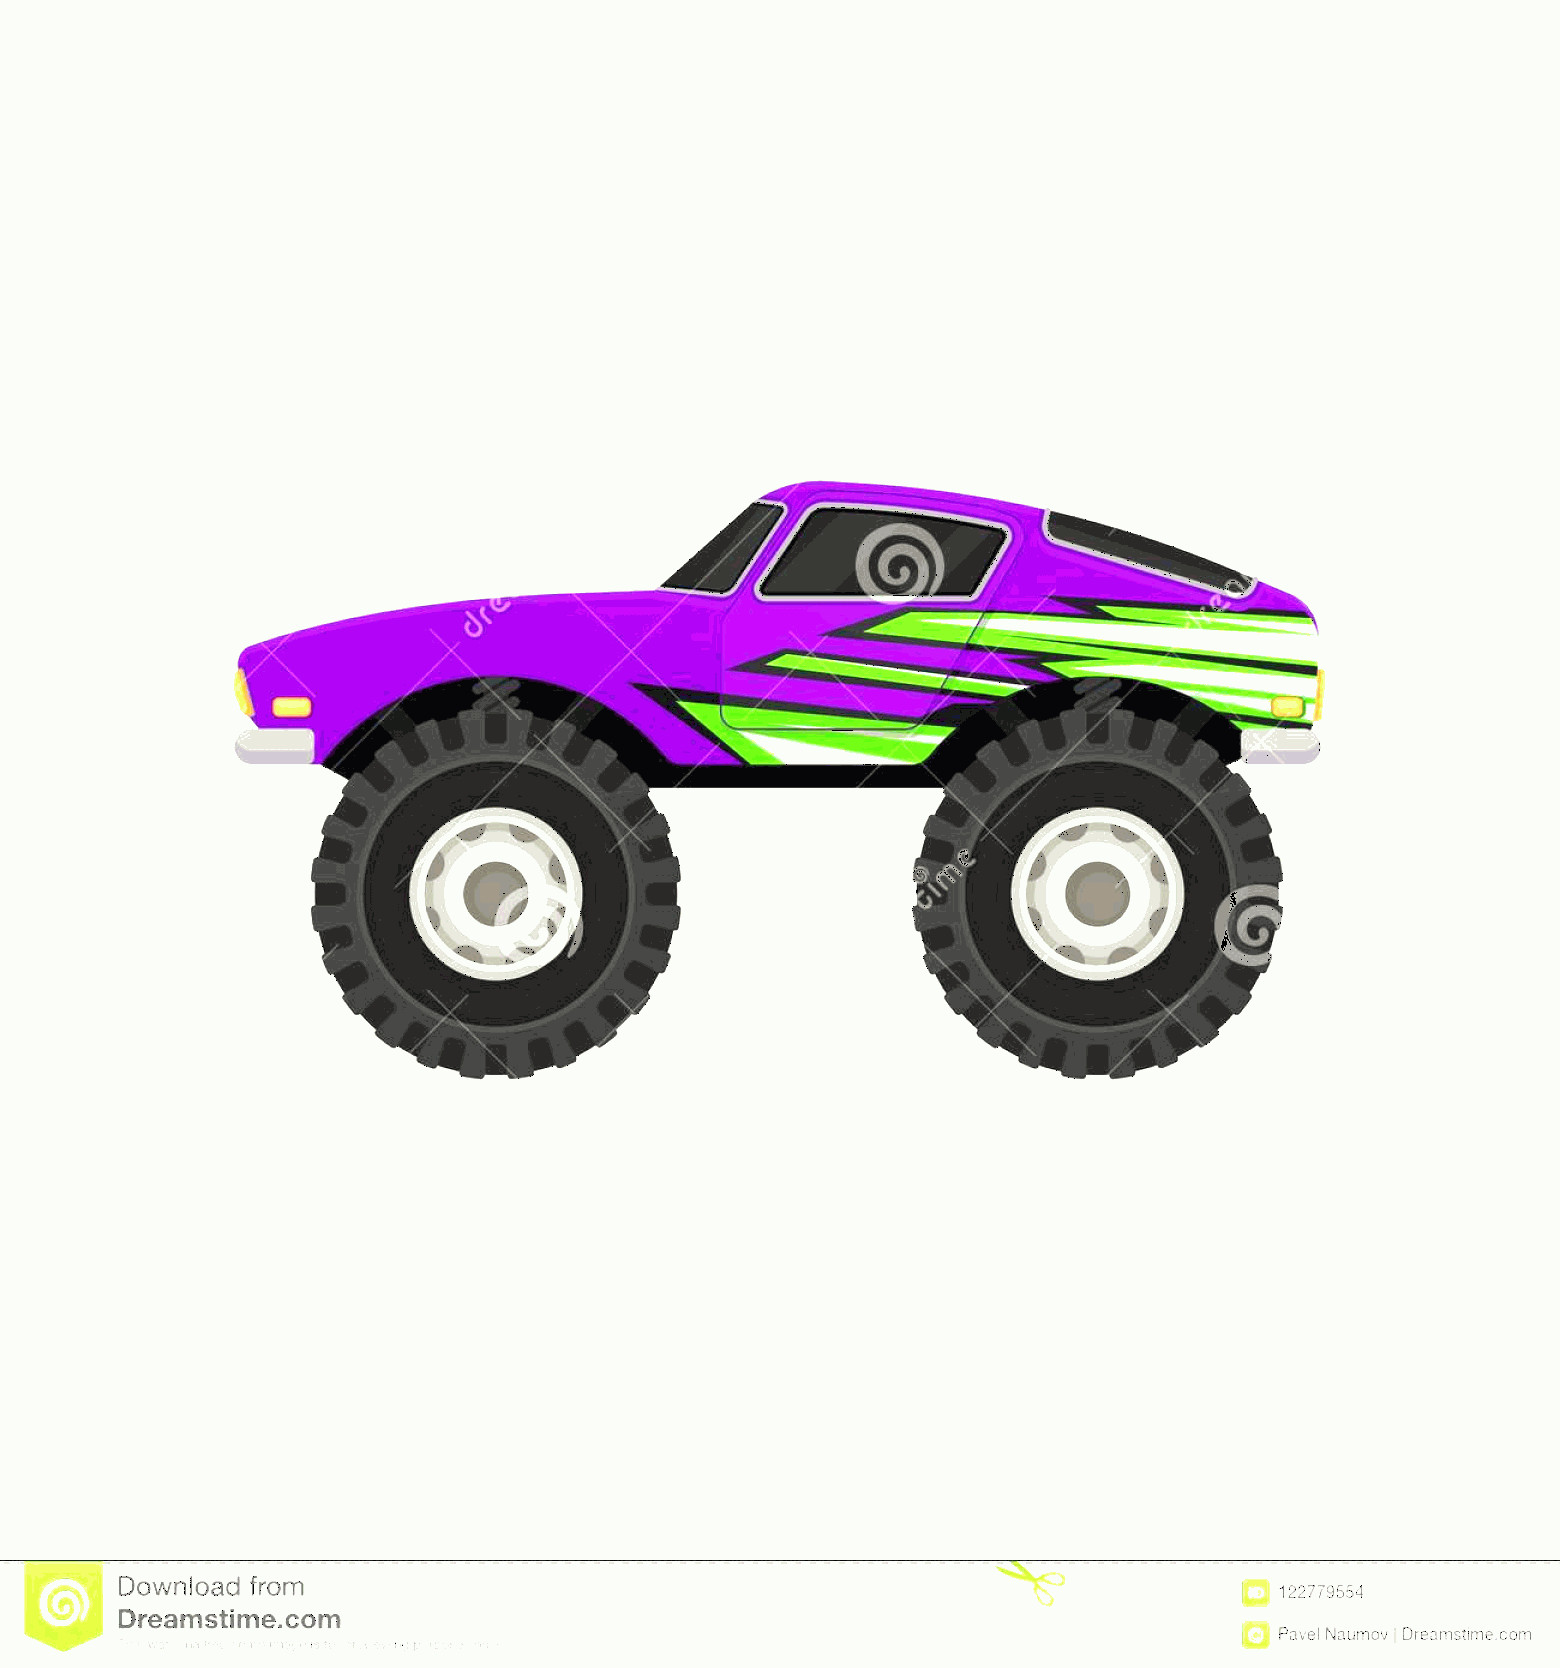 Monster Truck Tires Vector: Flat Vector Icon Purple Monster Truck Cartoon Icon Car Large Tires Black Tinted Windows Green Decal Purple Monster Image